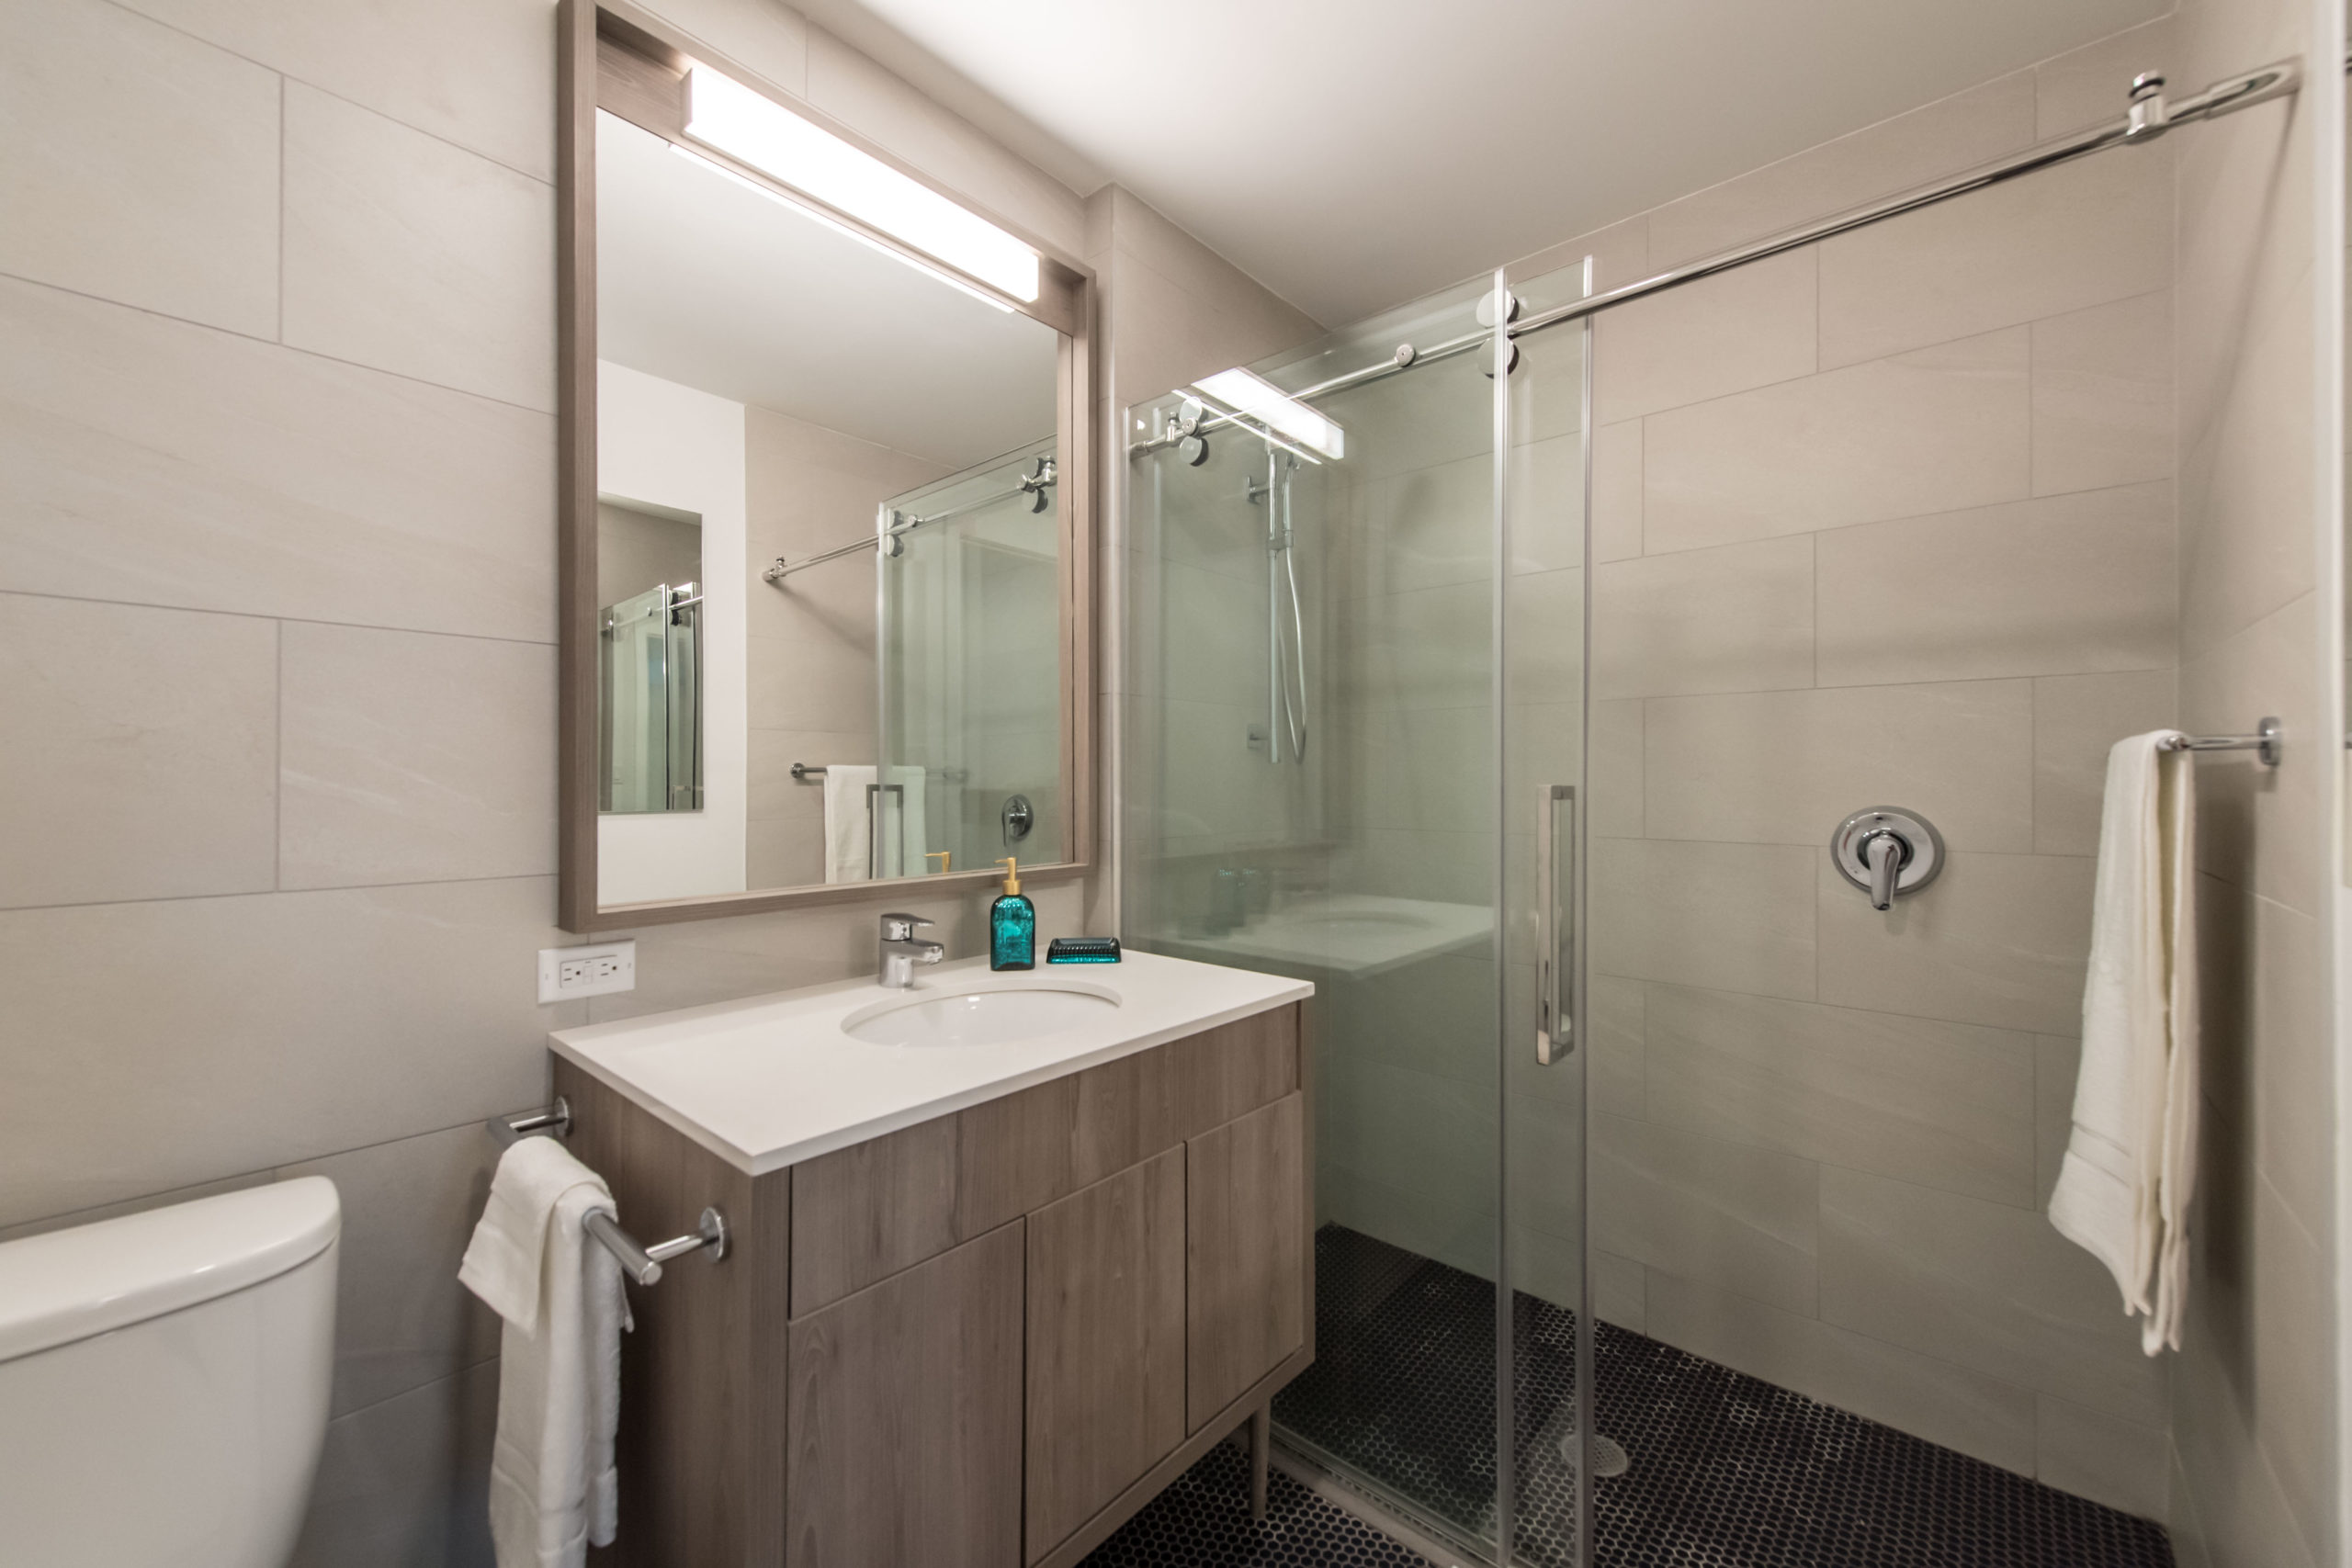 Luxurious tiled shower inside the Vitagraph Apartments in Brooklyn